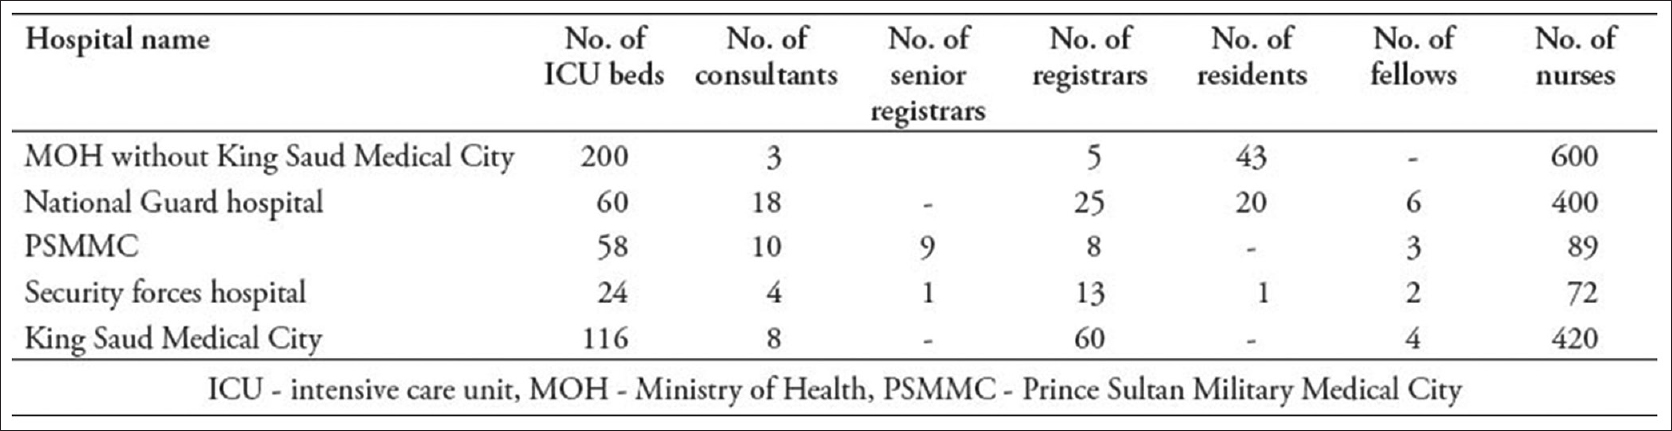 Figure 1: Riyadh structural intensive care unit configuration (Data derived from Ministry of Health 2013 year statistics)